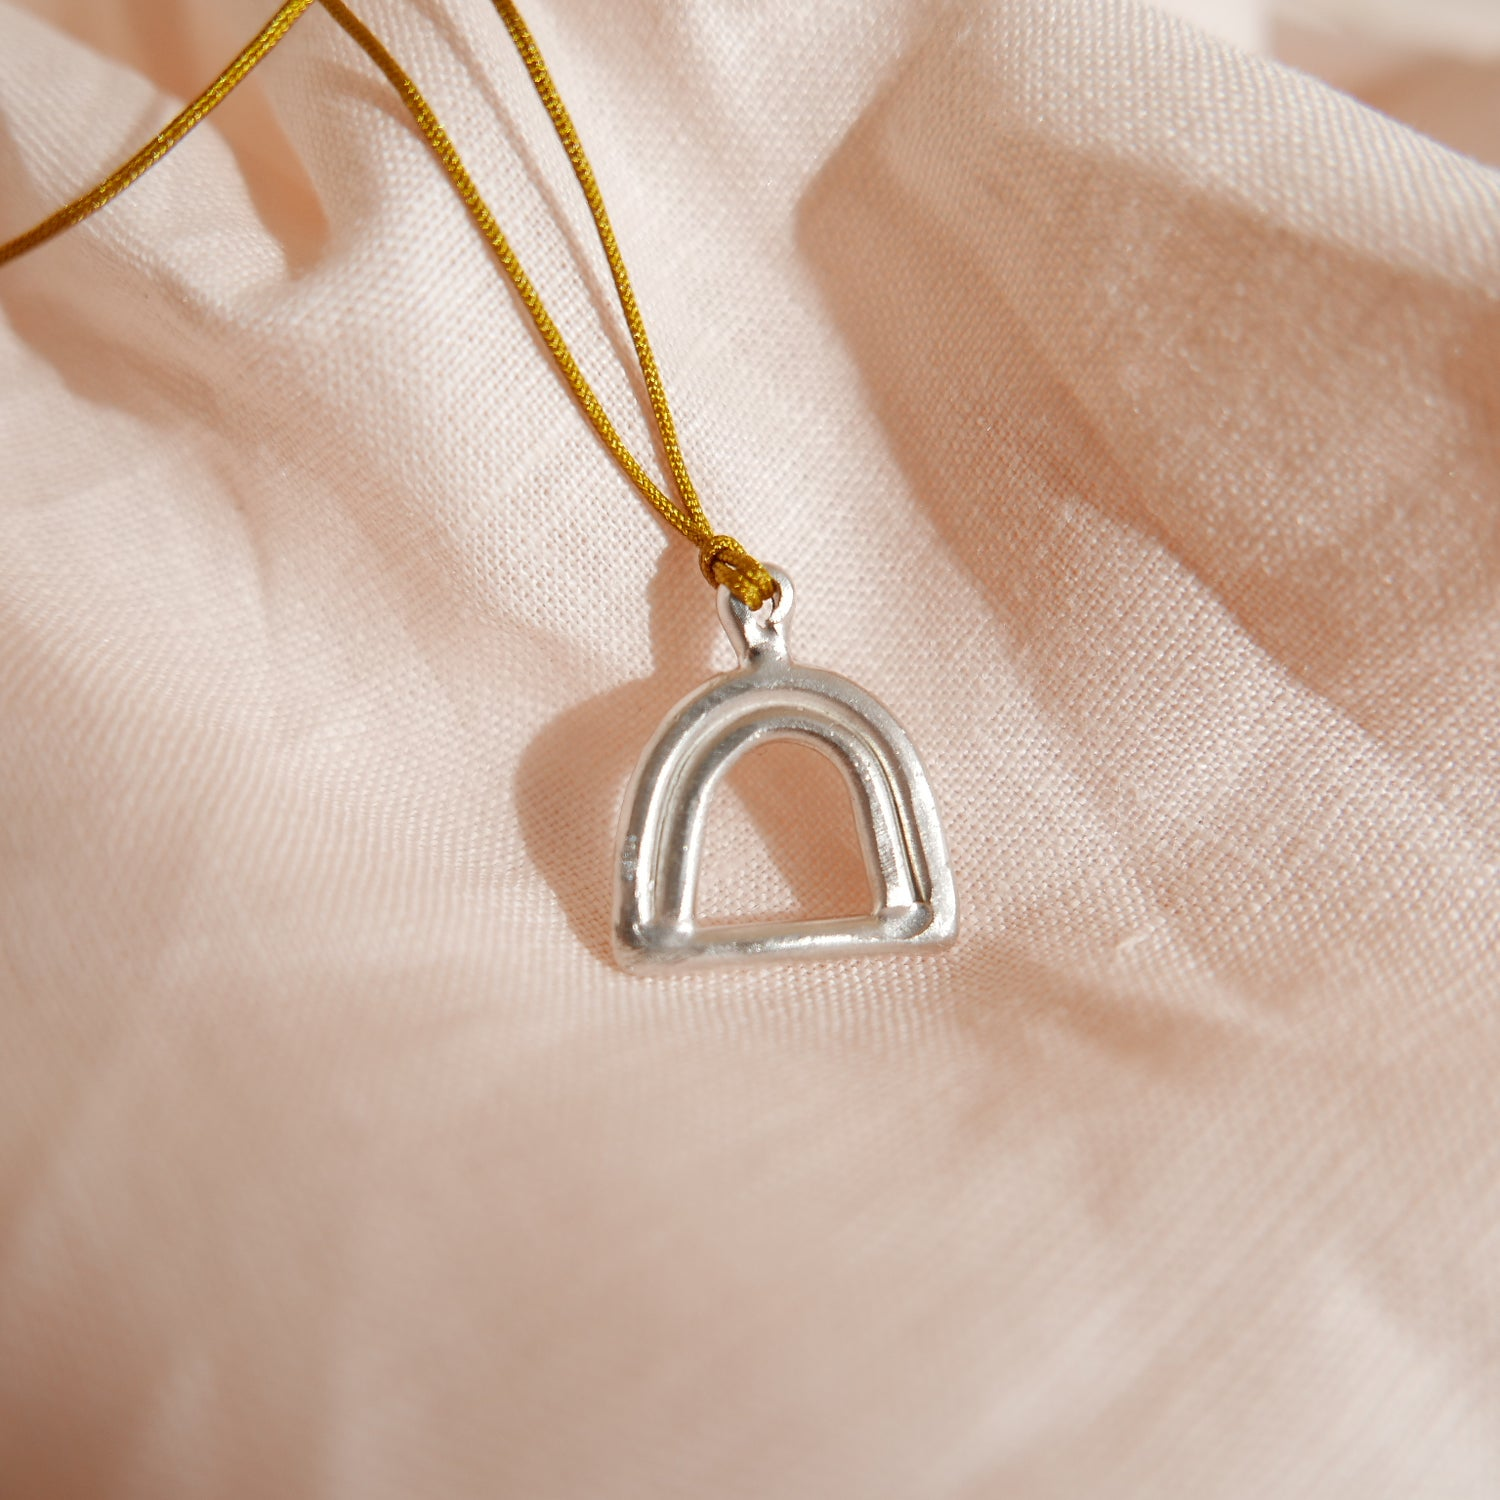 Image of Rainbow Charm Necklace - Silver + Mustard